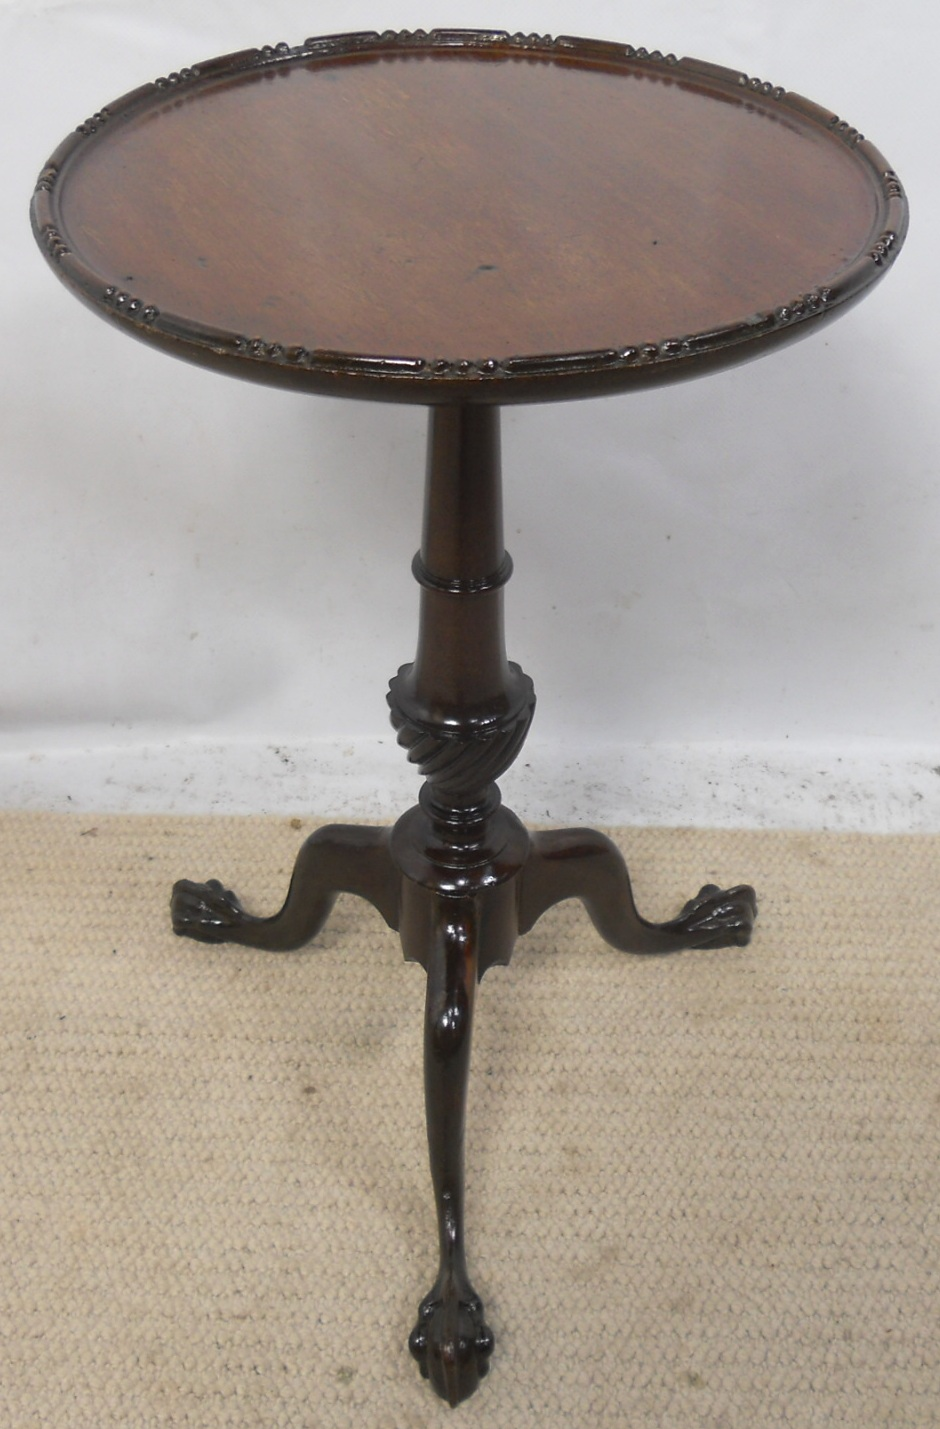 Small Mahogany Tripod Pedestal Wine Table : small mahogany tripod pedestal wine table 3518 p from www.harrisonantiquefurniture.co.uk size 940 x 1429 jpeg 333kB